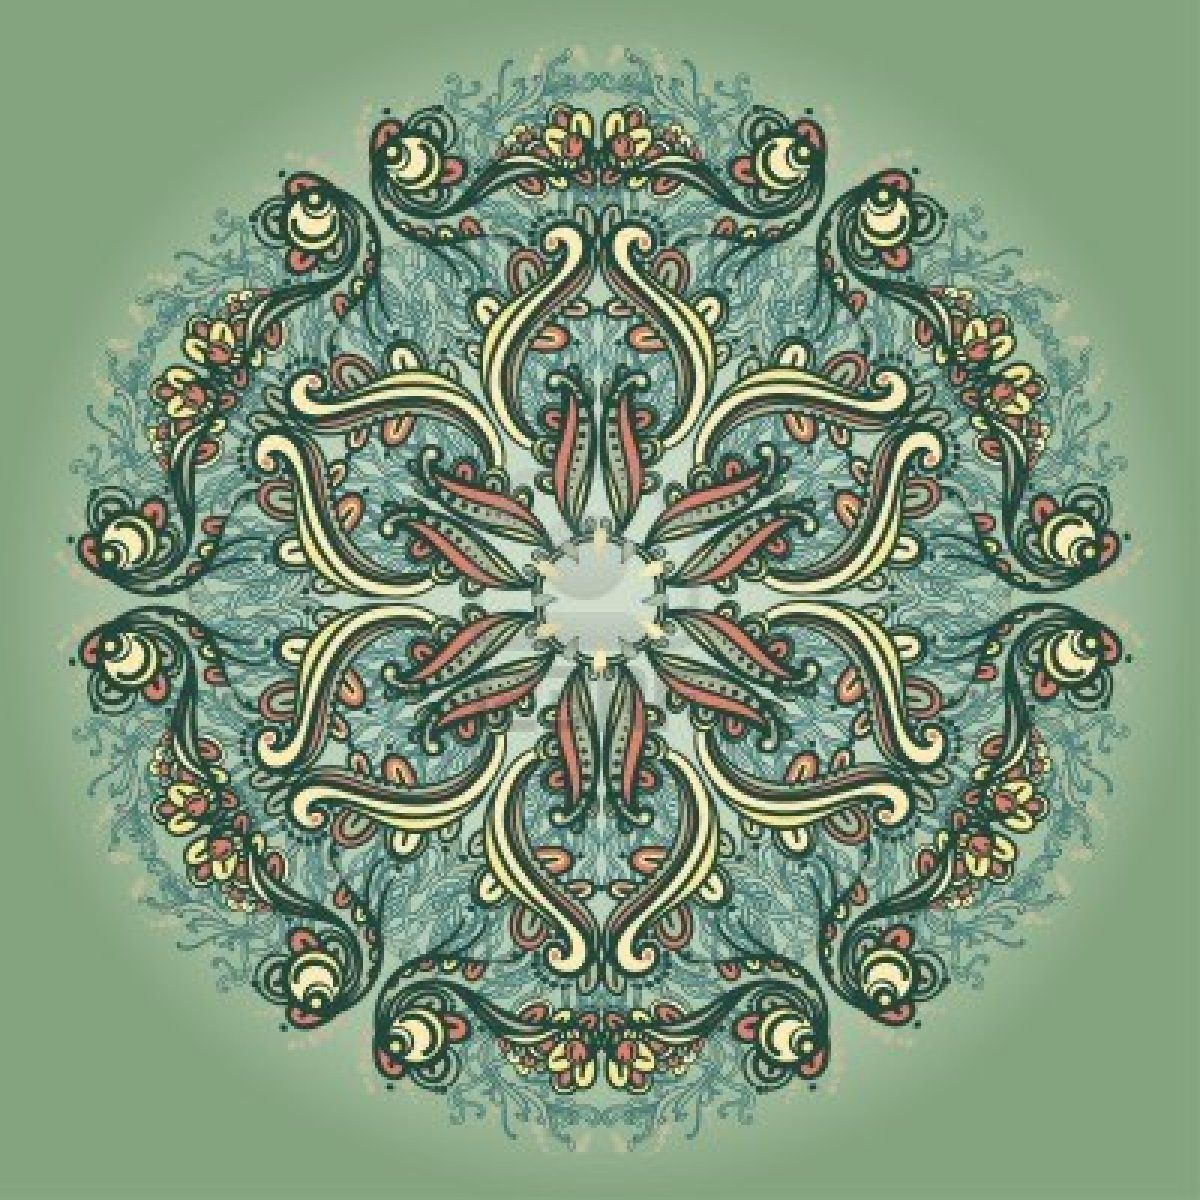 Ornamental round floral lace pattern kaleidoscopic floral